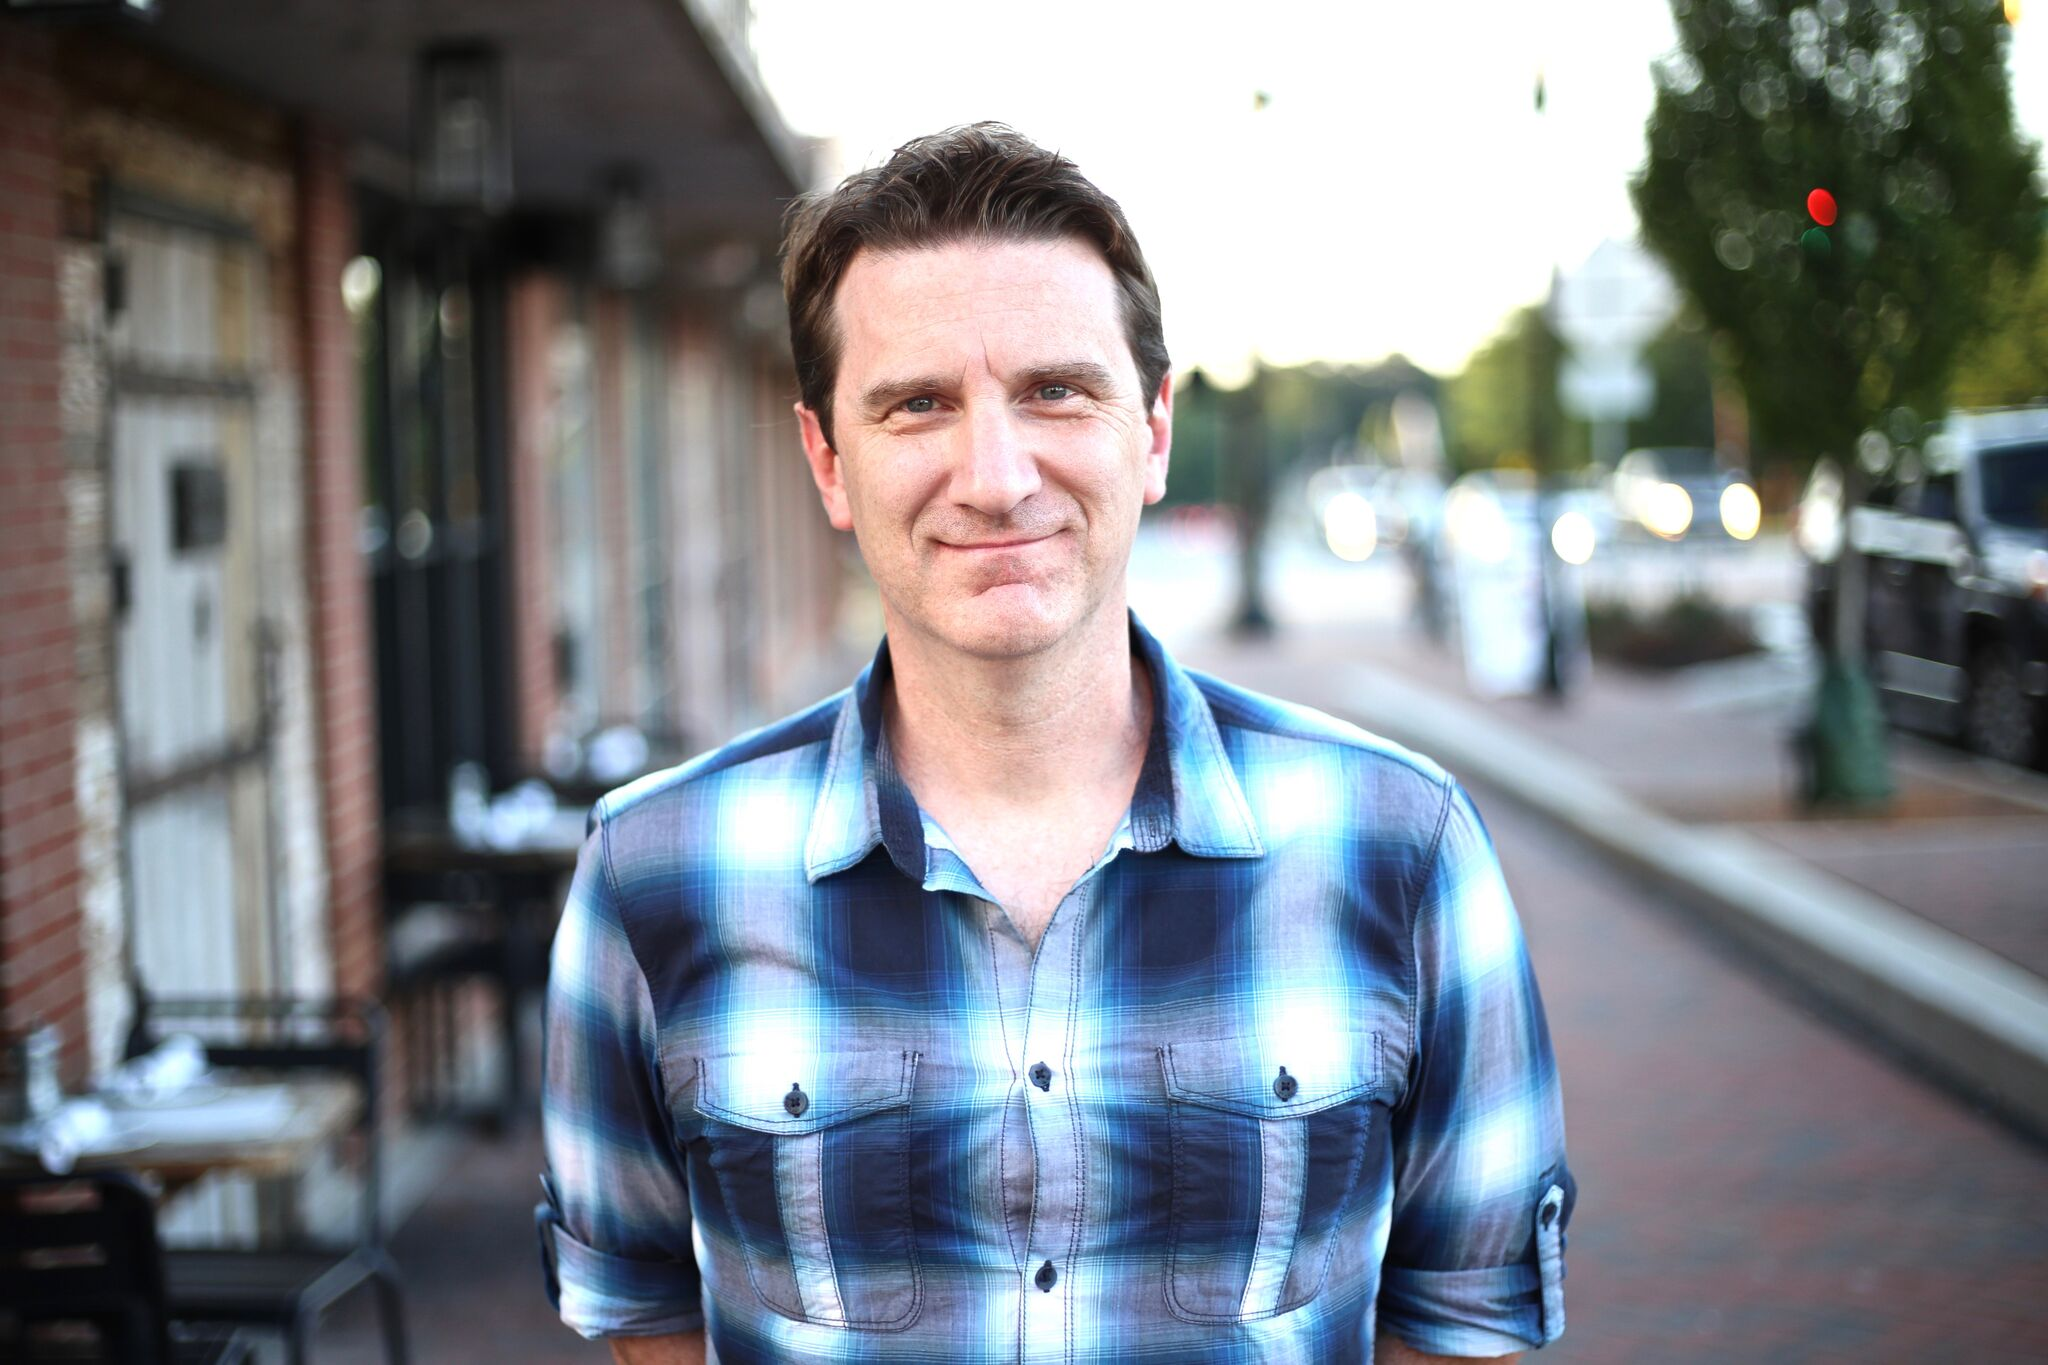 CNLP 154: Todd Fields on the Constant Change in Worship Music, What Makes a Great Worship Leader, Working with Andy Stanley and More